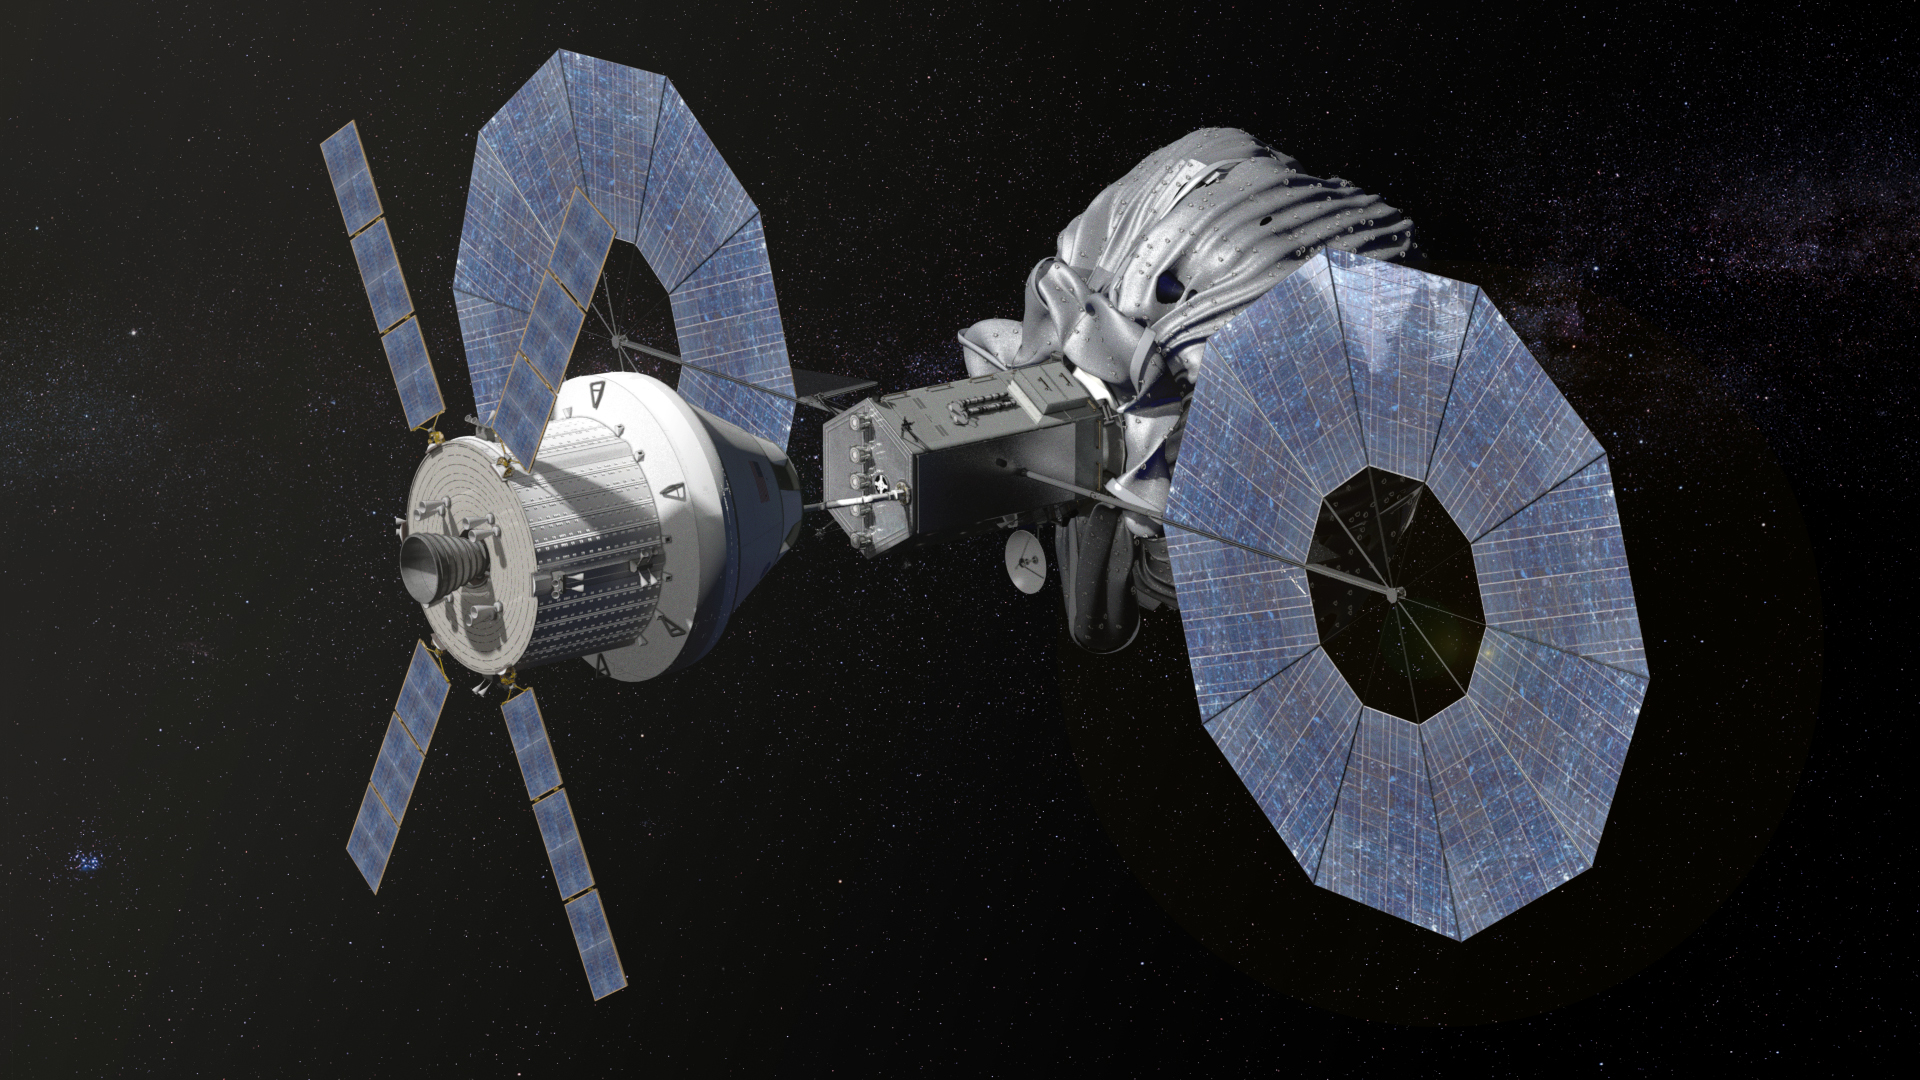 Nasa releases new imagery of asteroid mission for Nasa press release